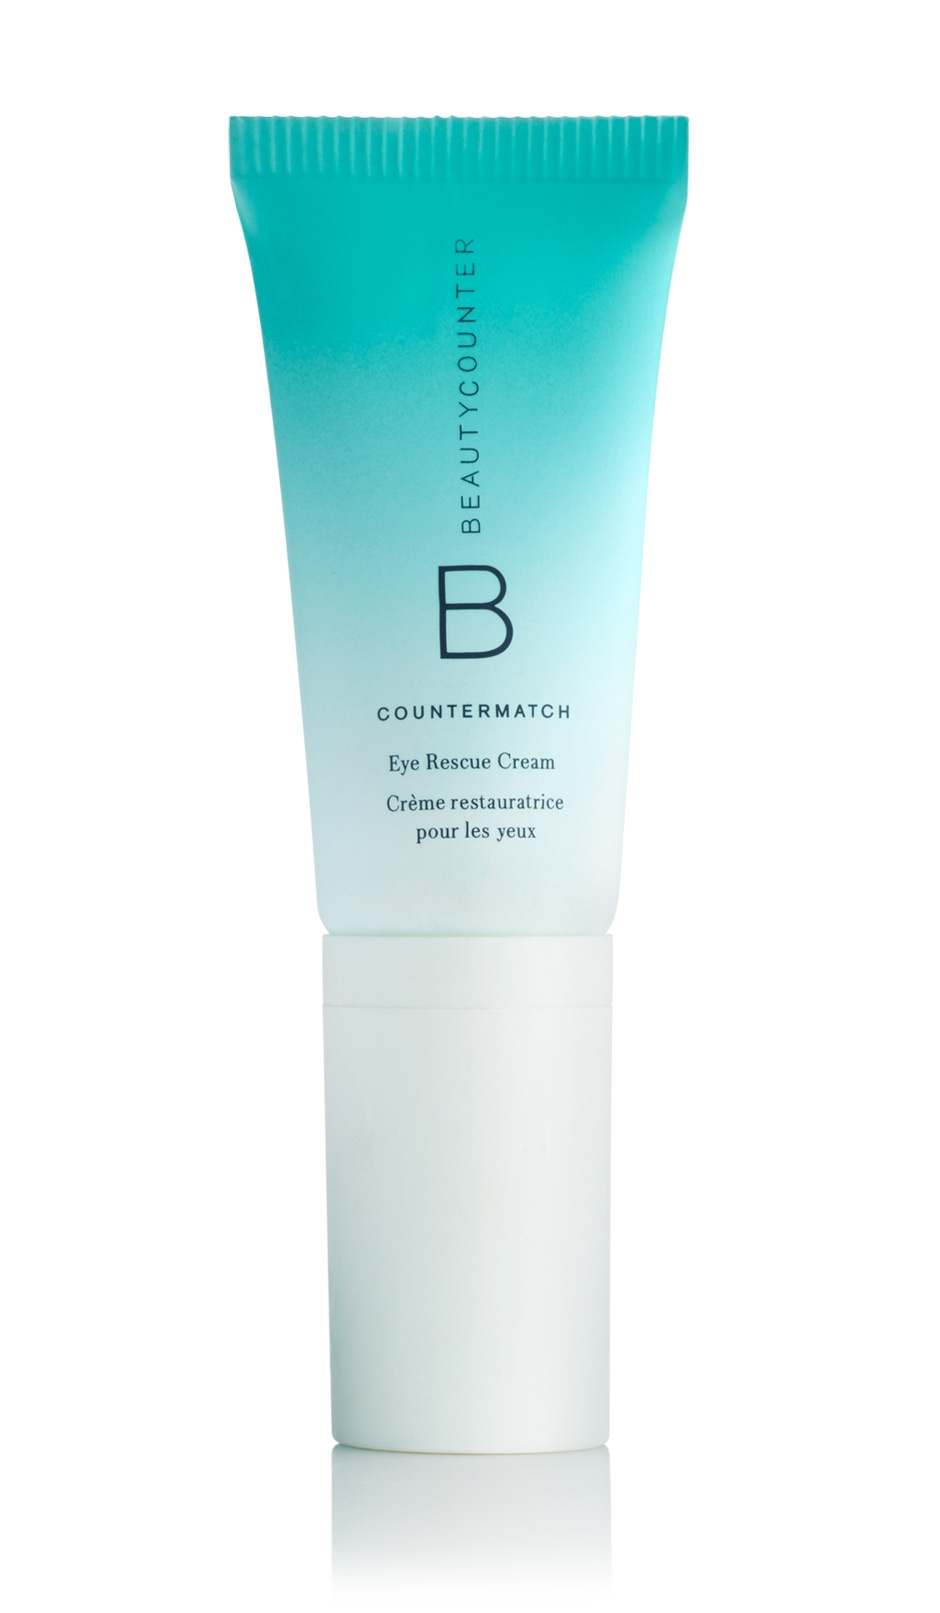 Eye Cream - This eye cream is amazing for instant restoration. If you need tightness or just an everyday eye cream, this is the best I've found.